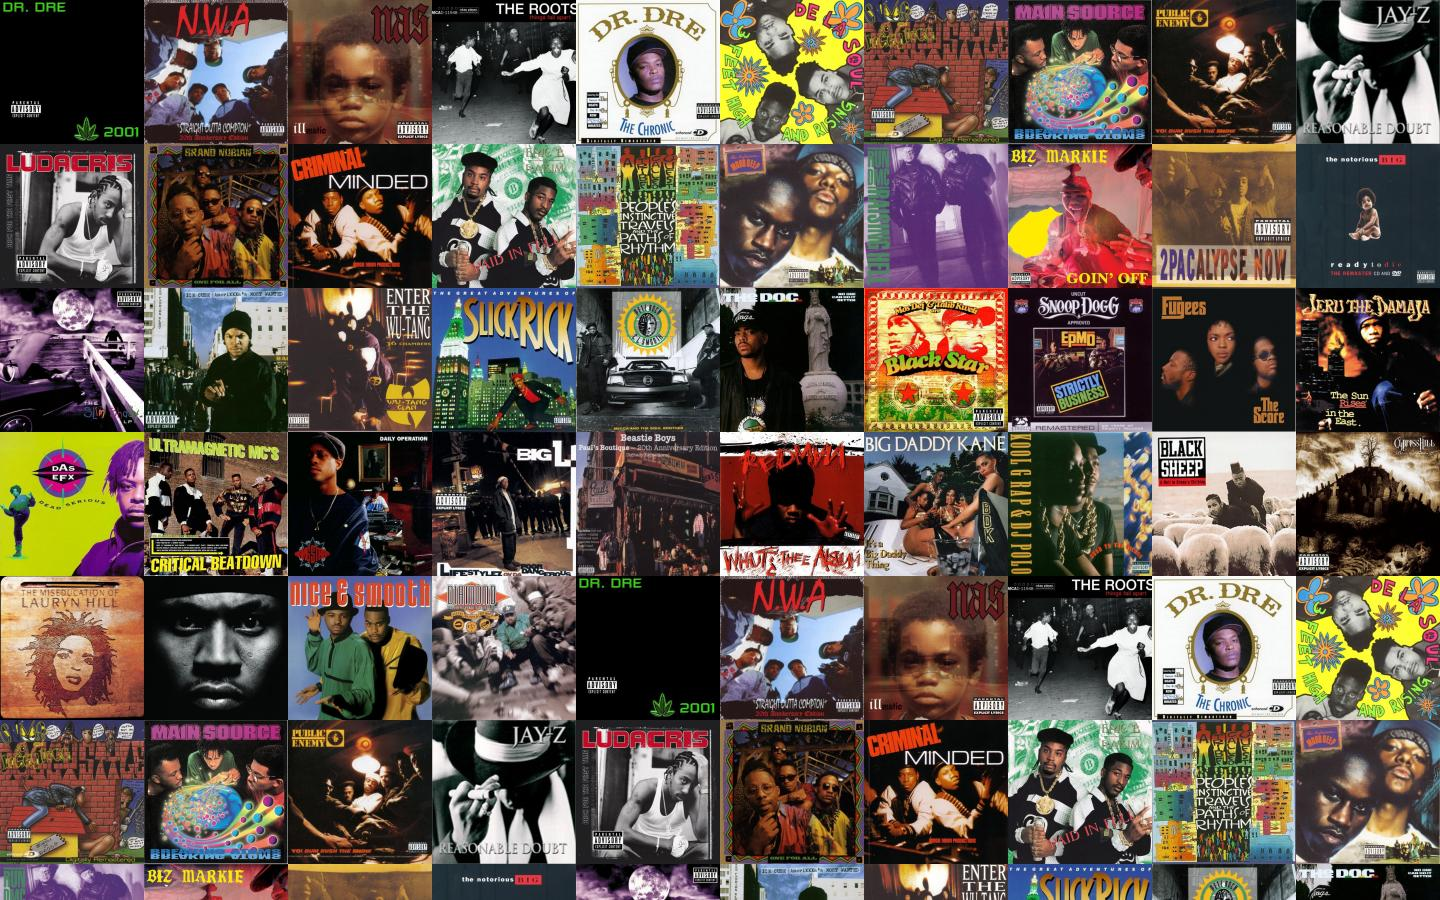 Dr Dre Chronic N W A Straight Outta Compton Wallpaper Tiled